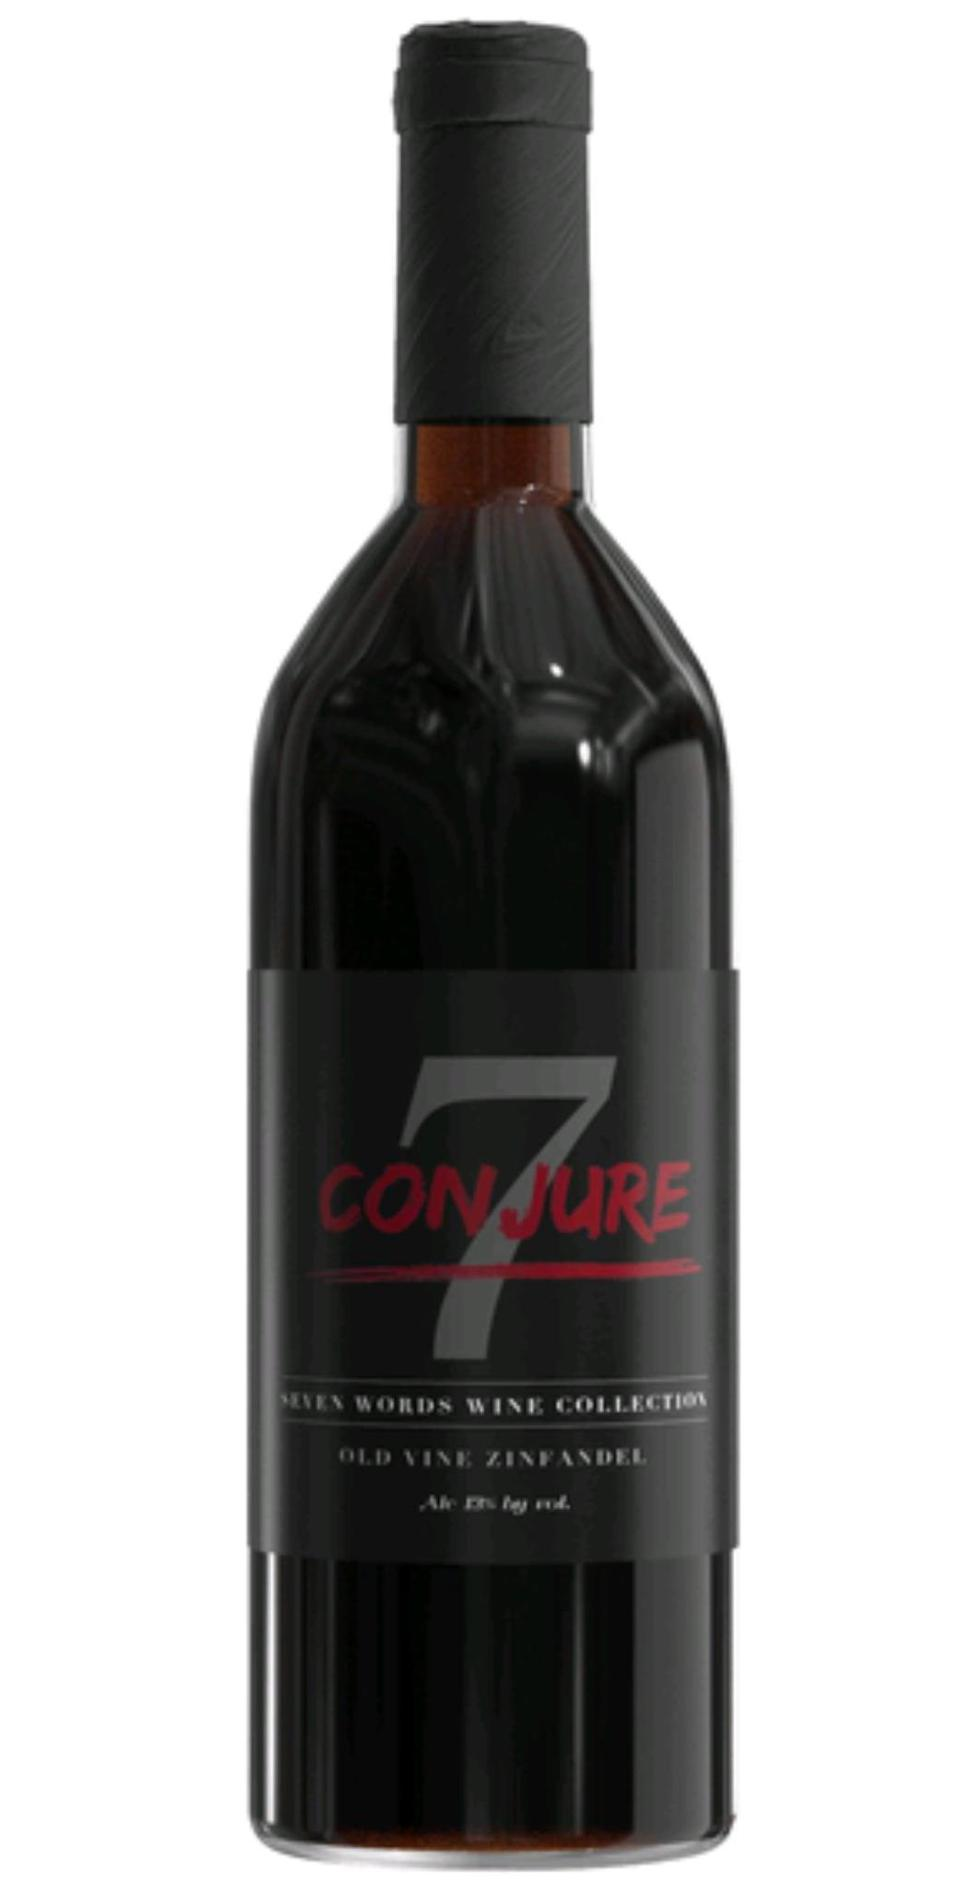 Sip and Share Wines Conjure Zinfandel